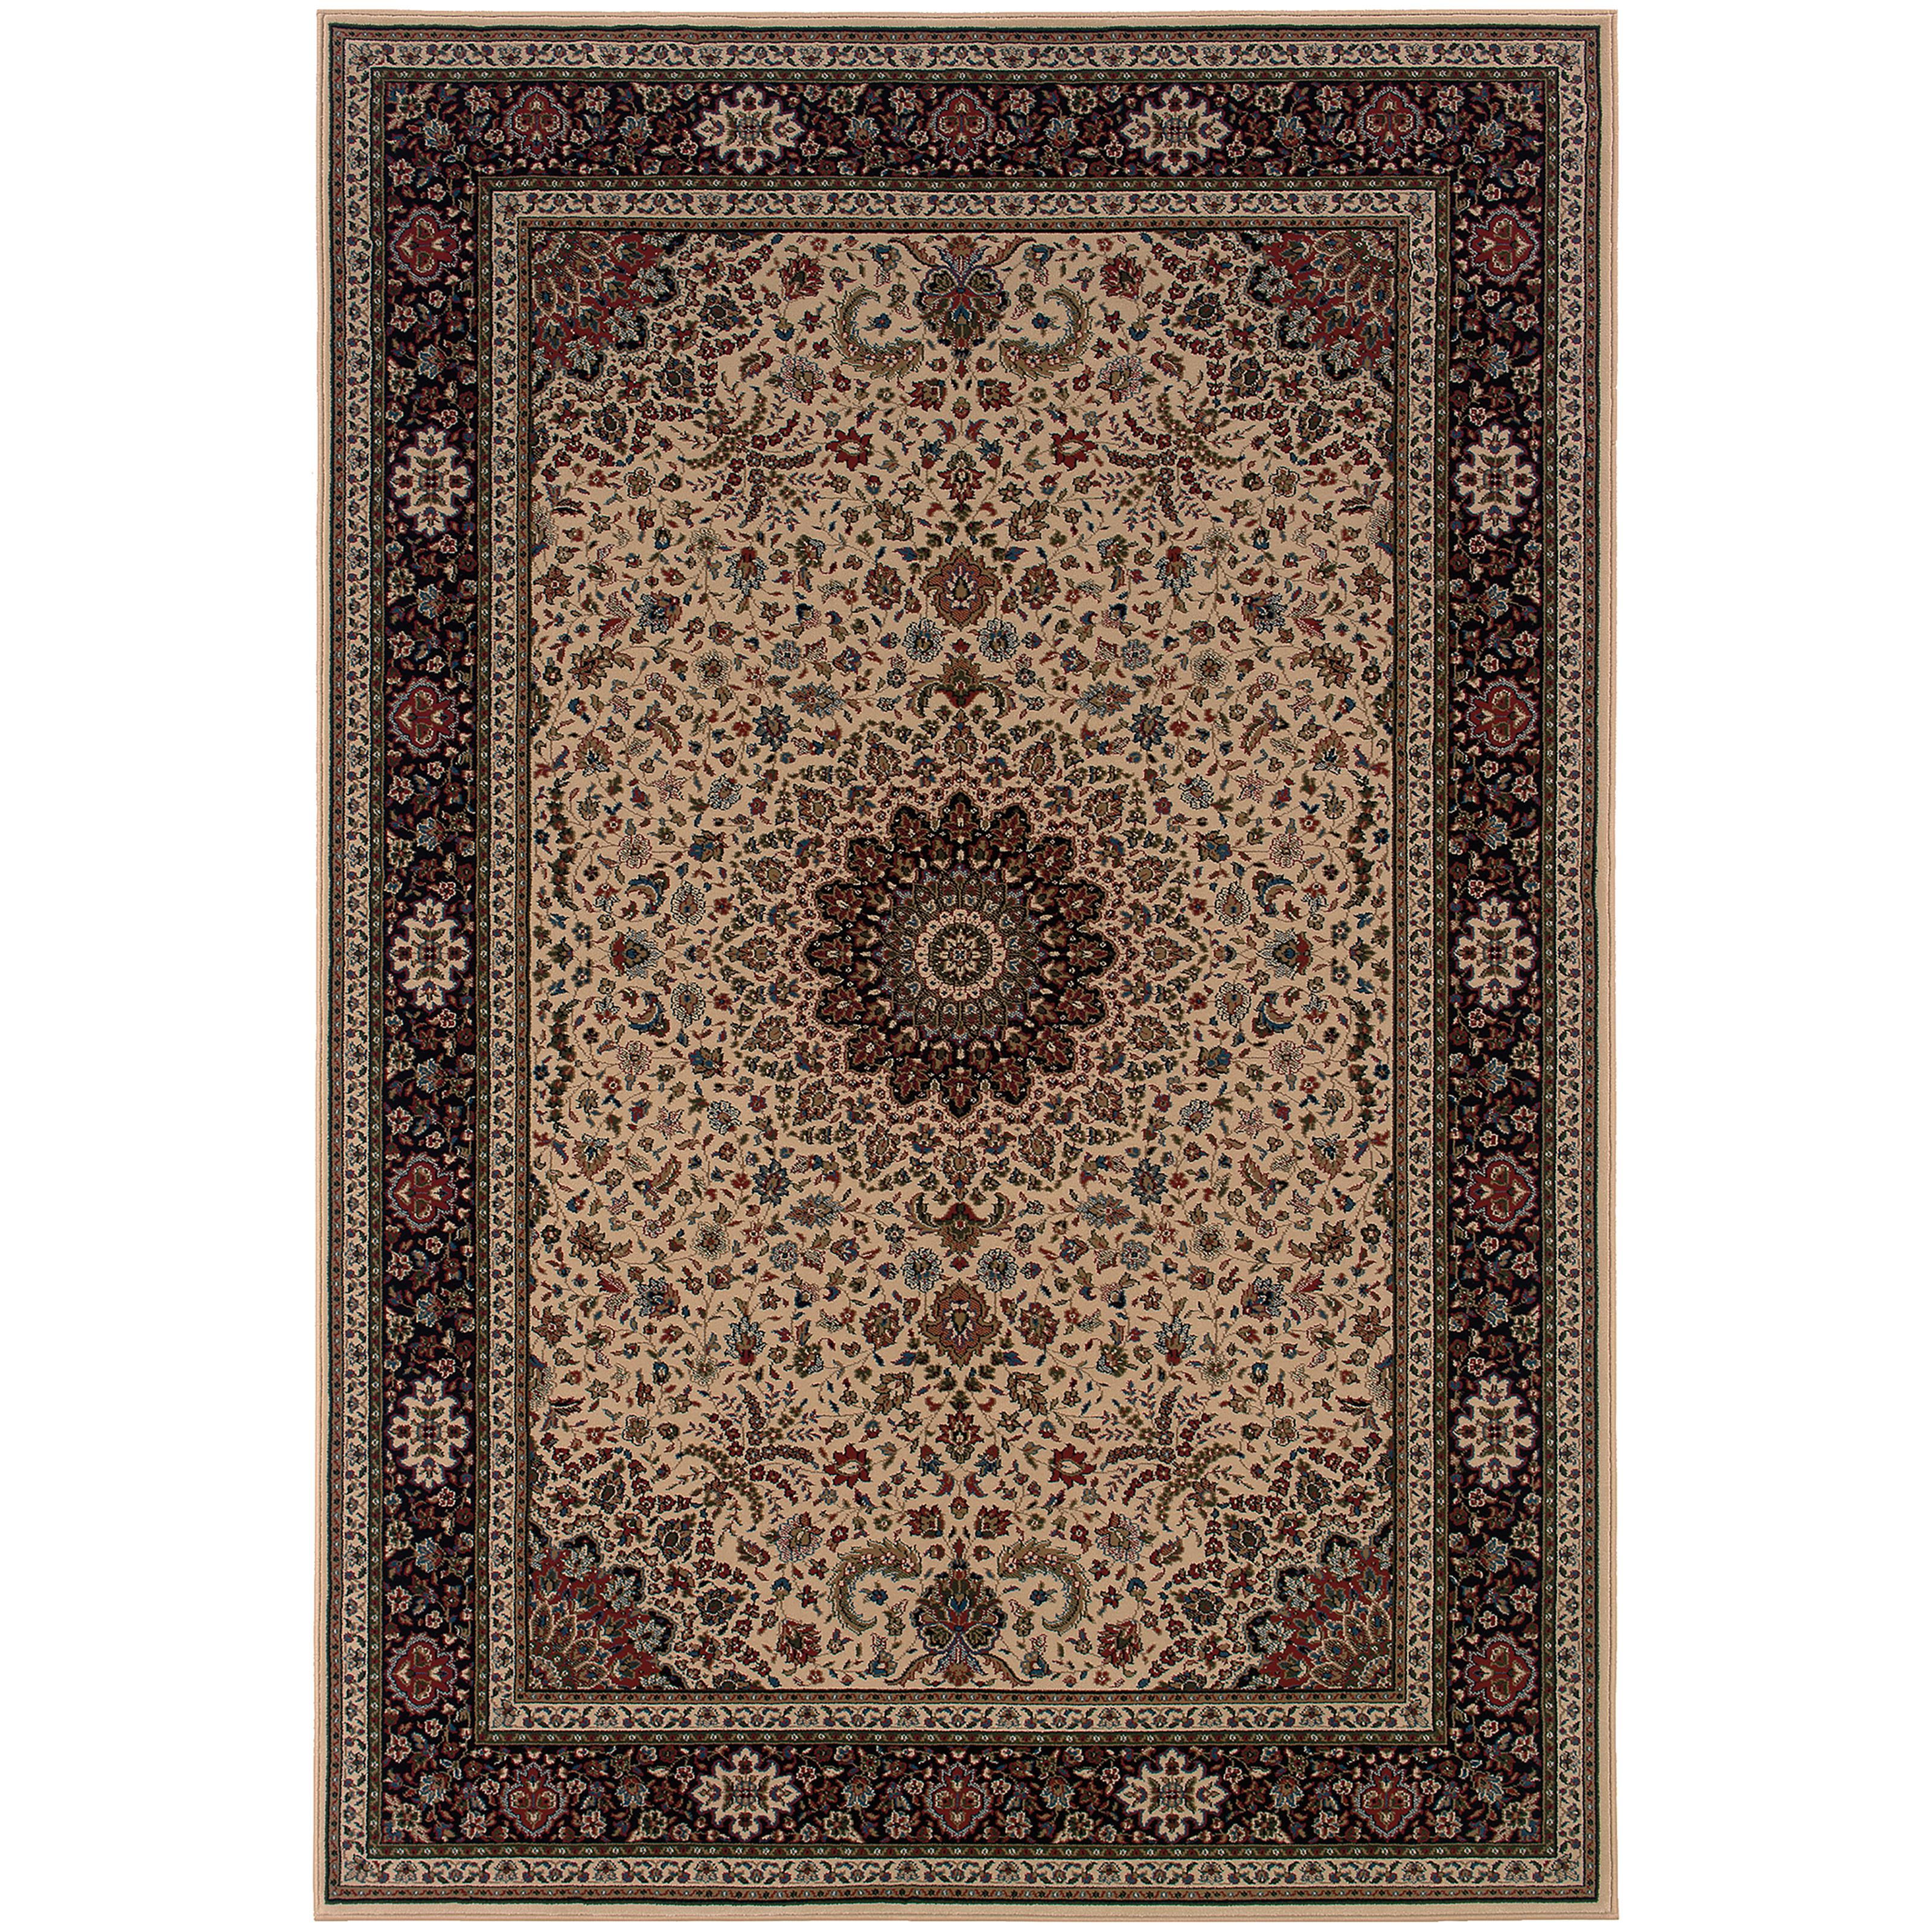 Oriental Weavers Ariana 12' X 15' Rug - Item Number: A095I8360450ST